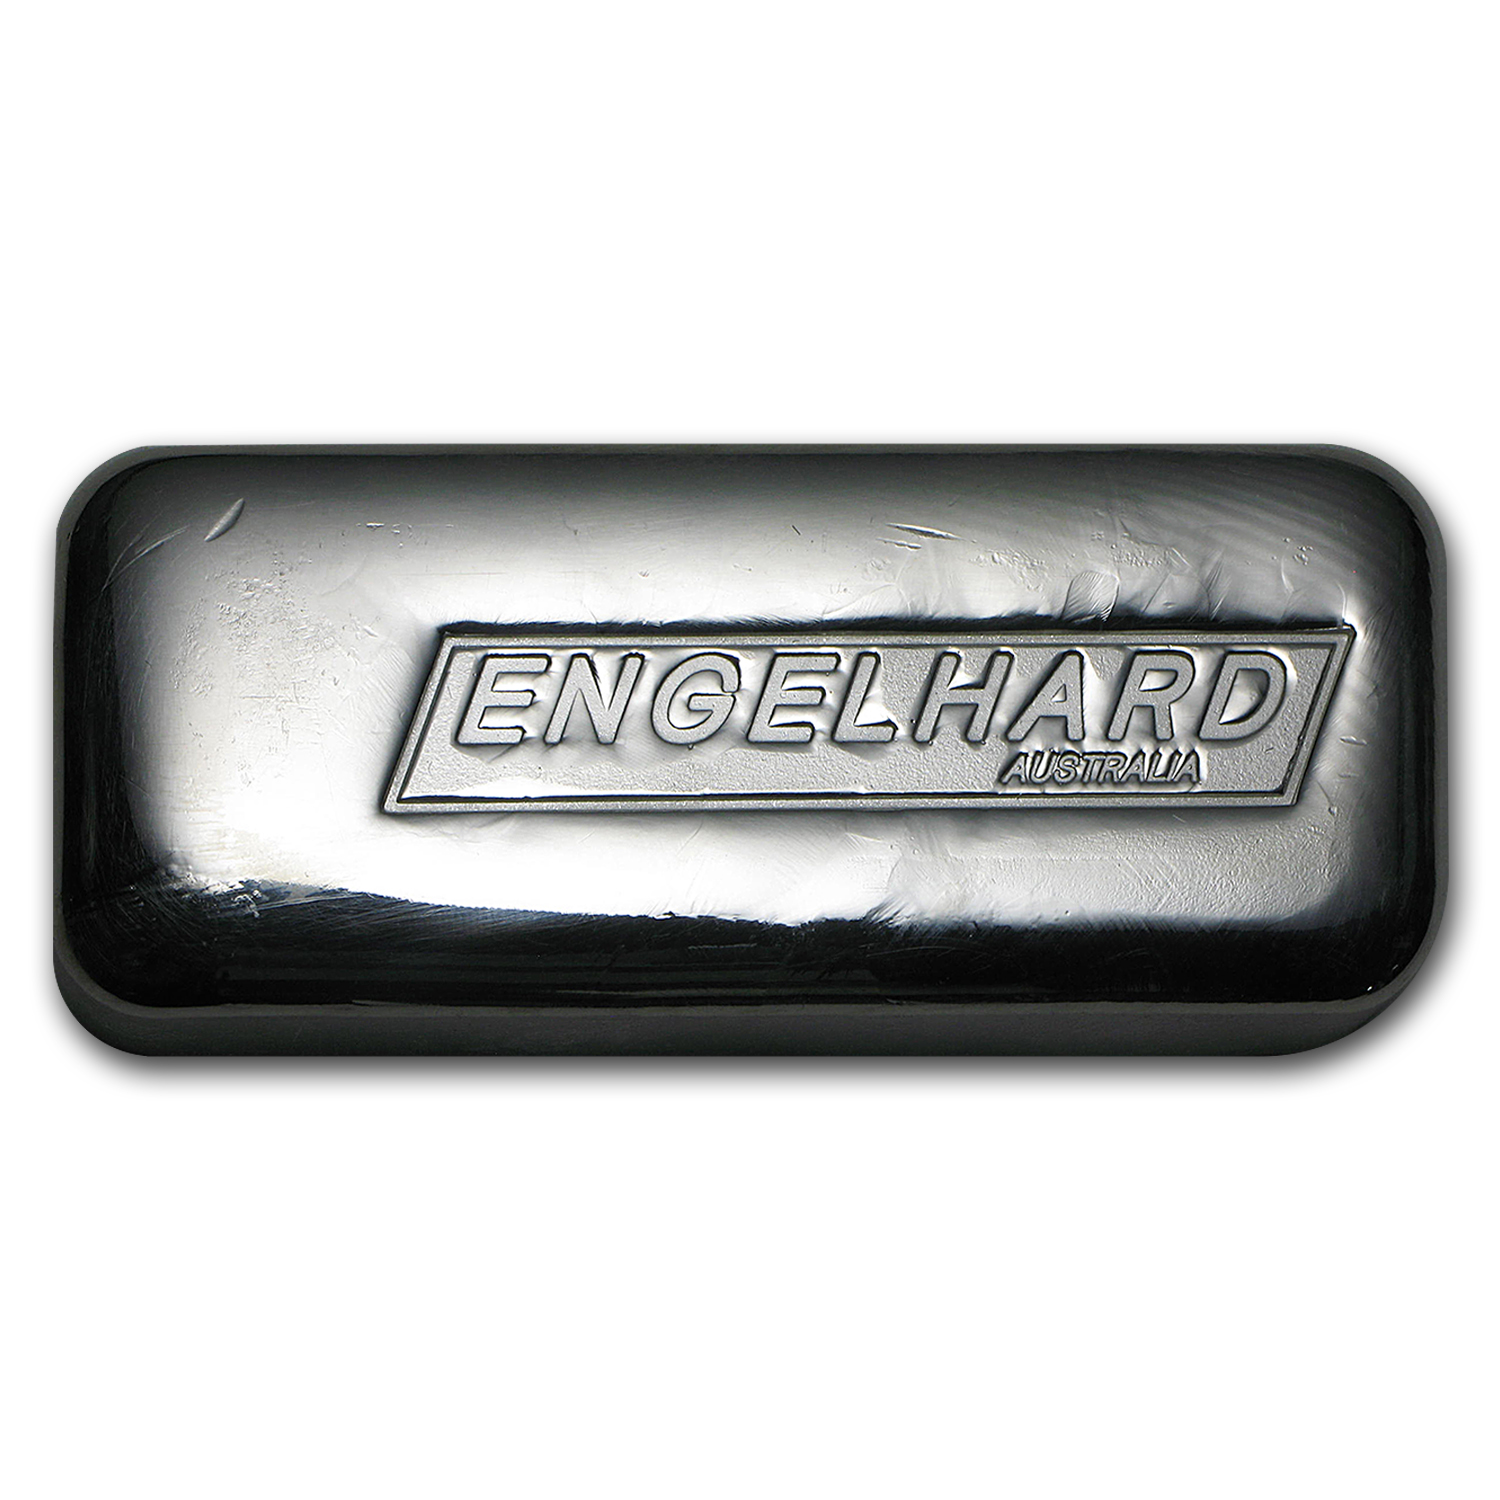 10 oz Silver Bar - Engelhard-Australia (Cast, New)